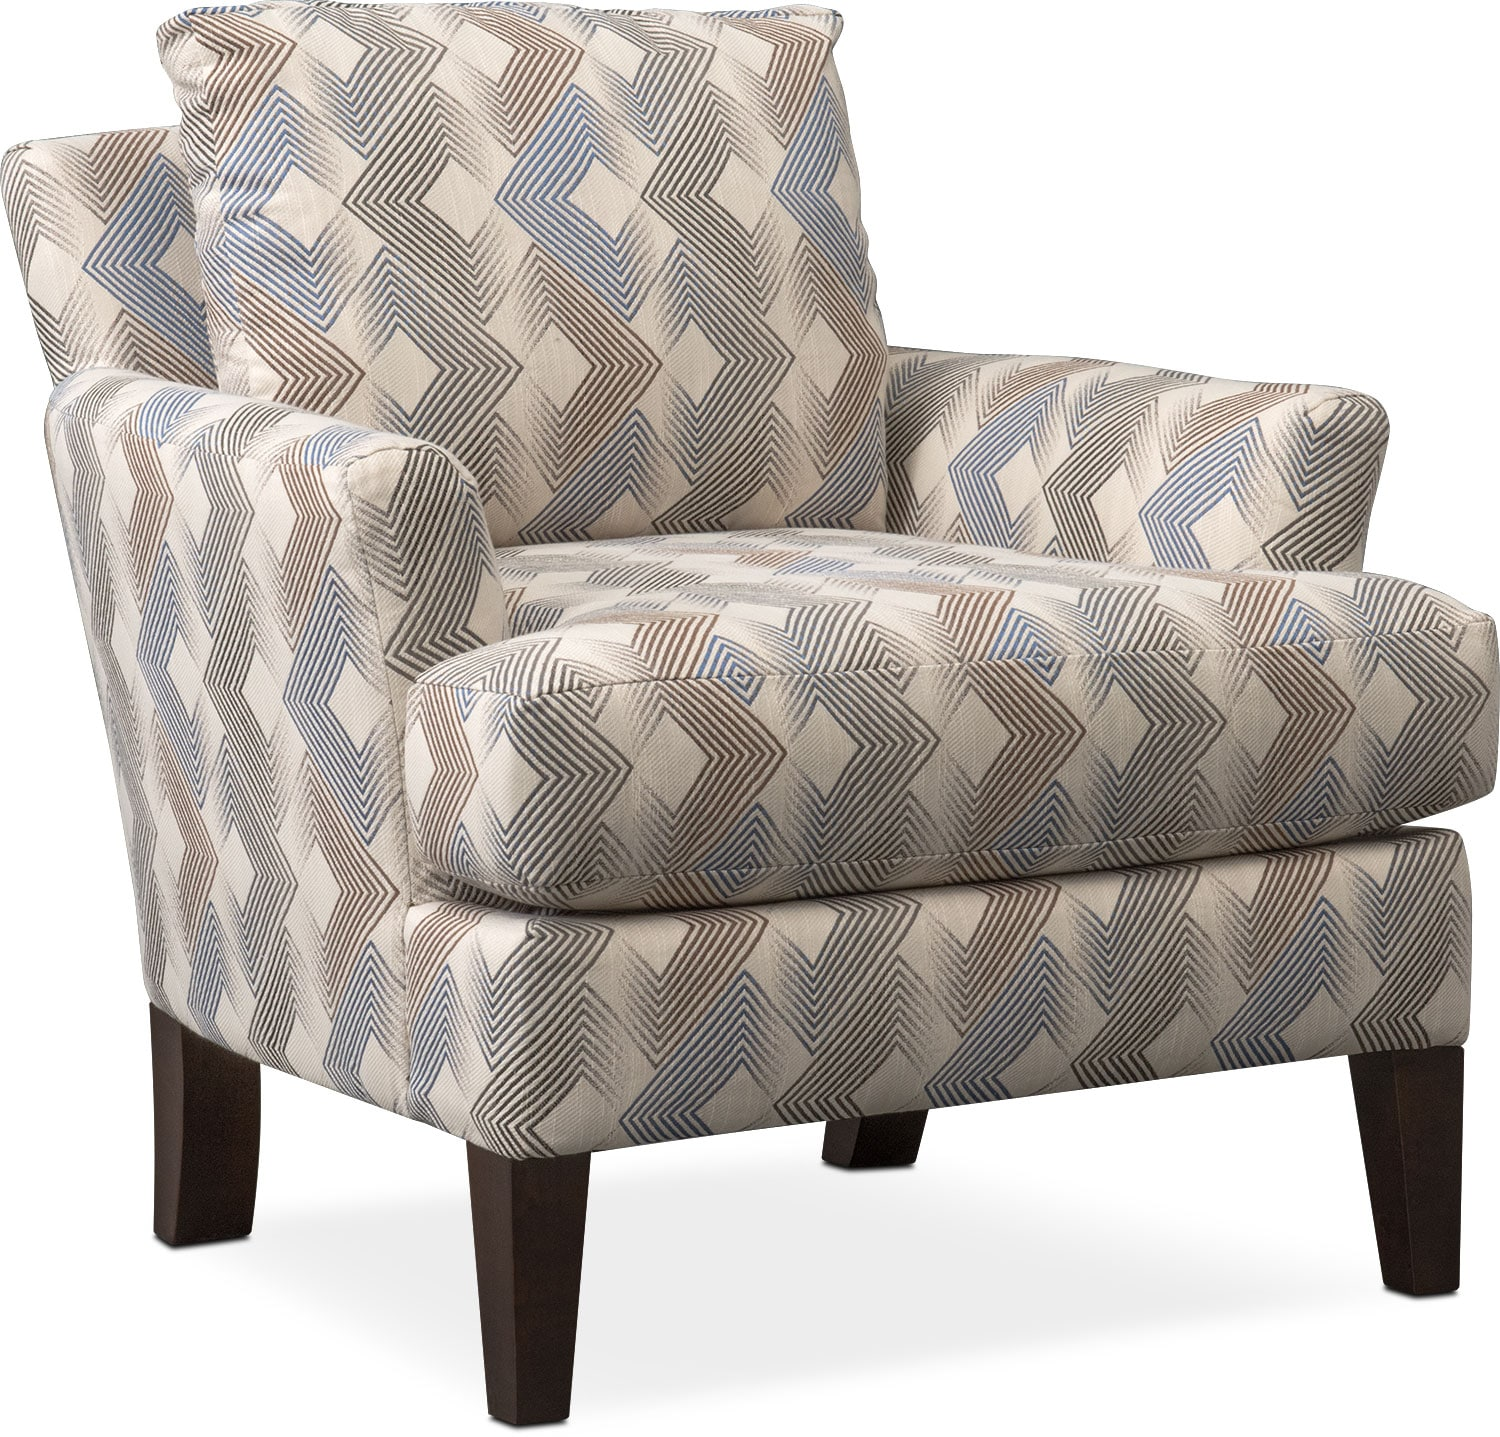 Living Room Furniture - Trevor Accent Chair - Twilight